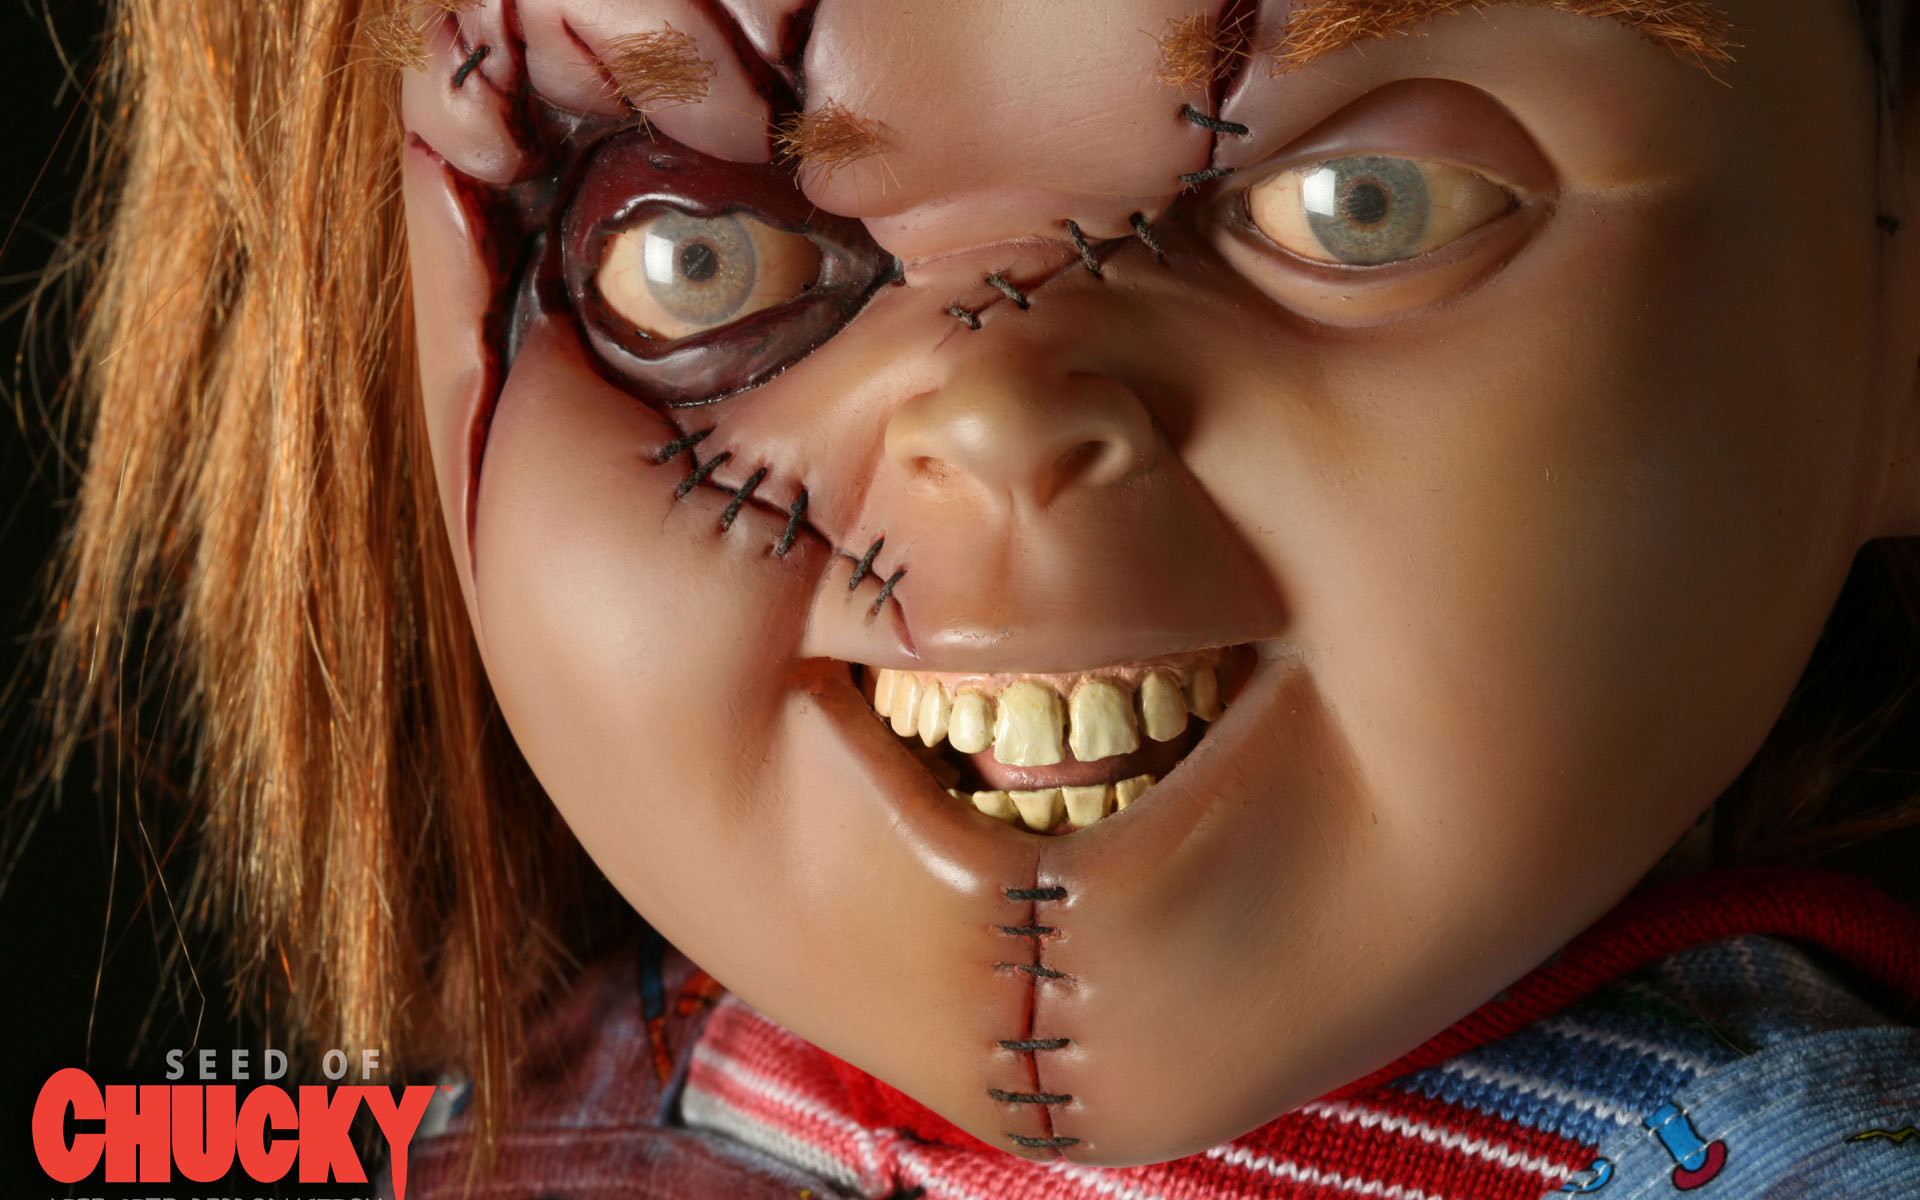 1920x1200 Seed Of Chucky - Seed Of Chucky Wallpaper (29023592) - Fanpop